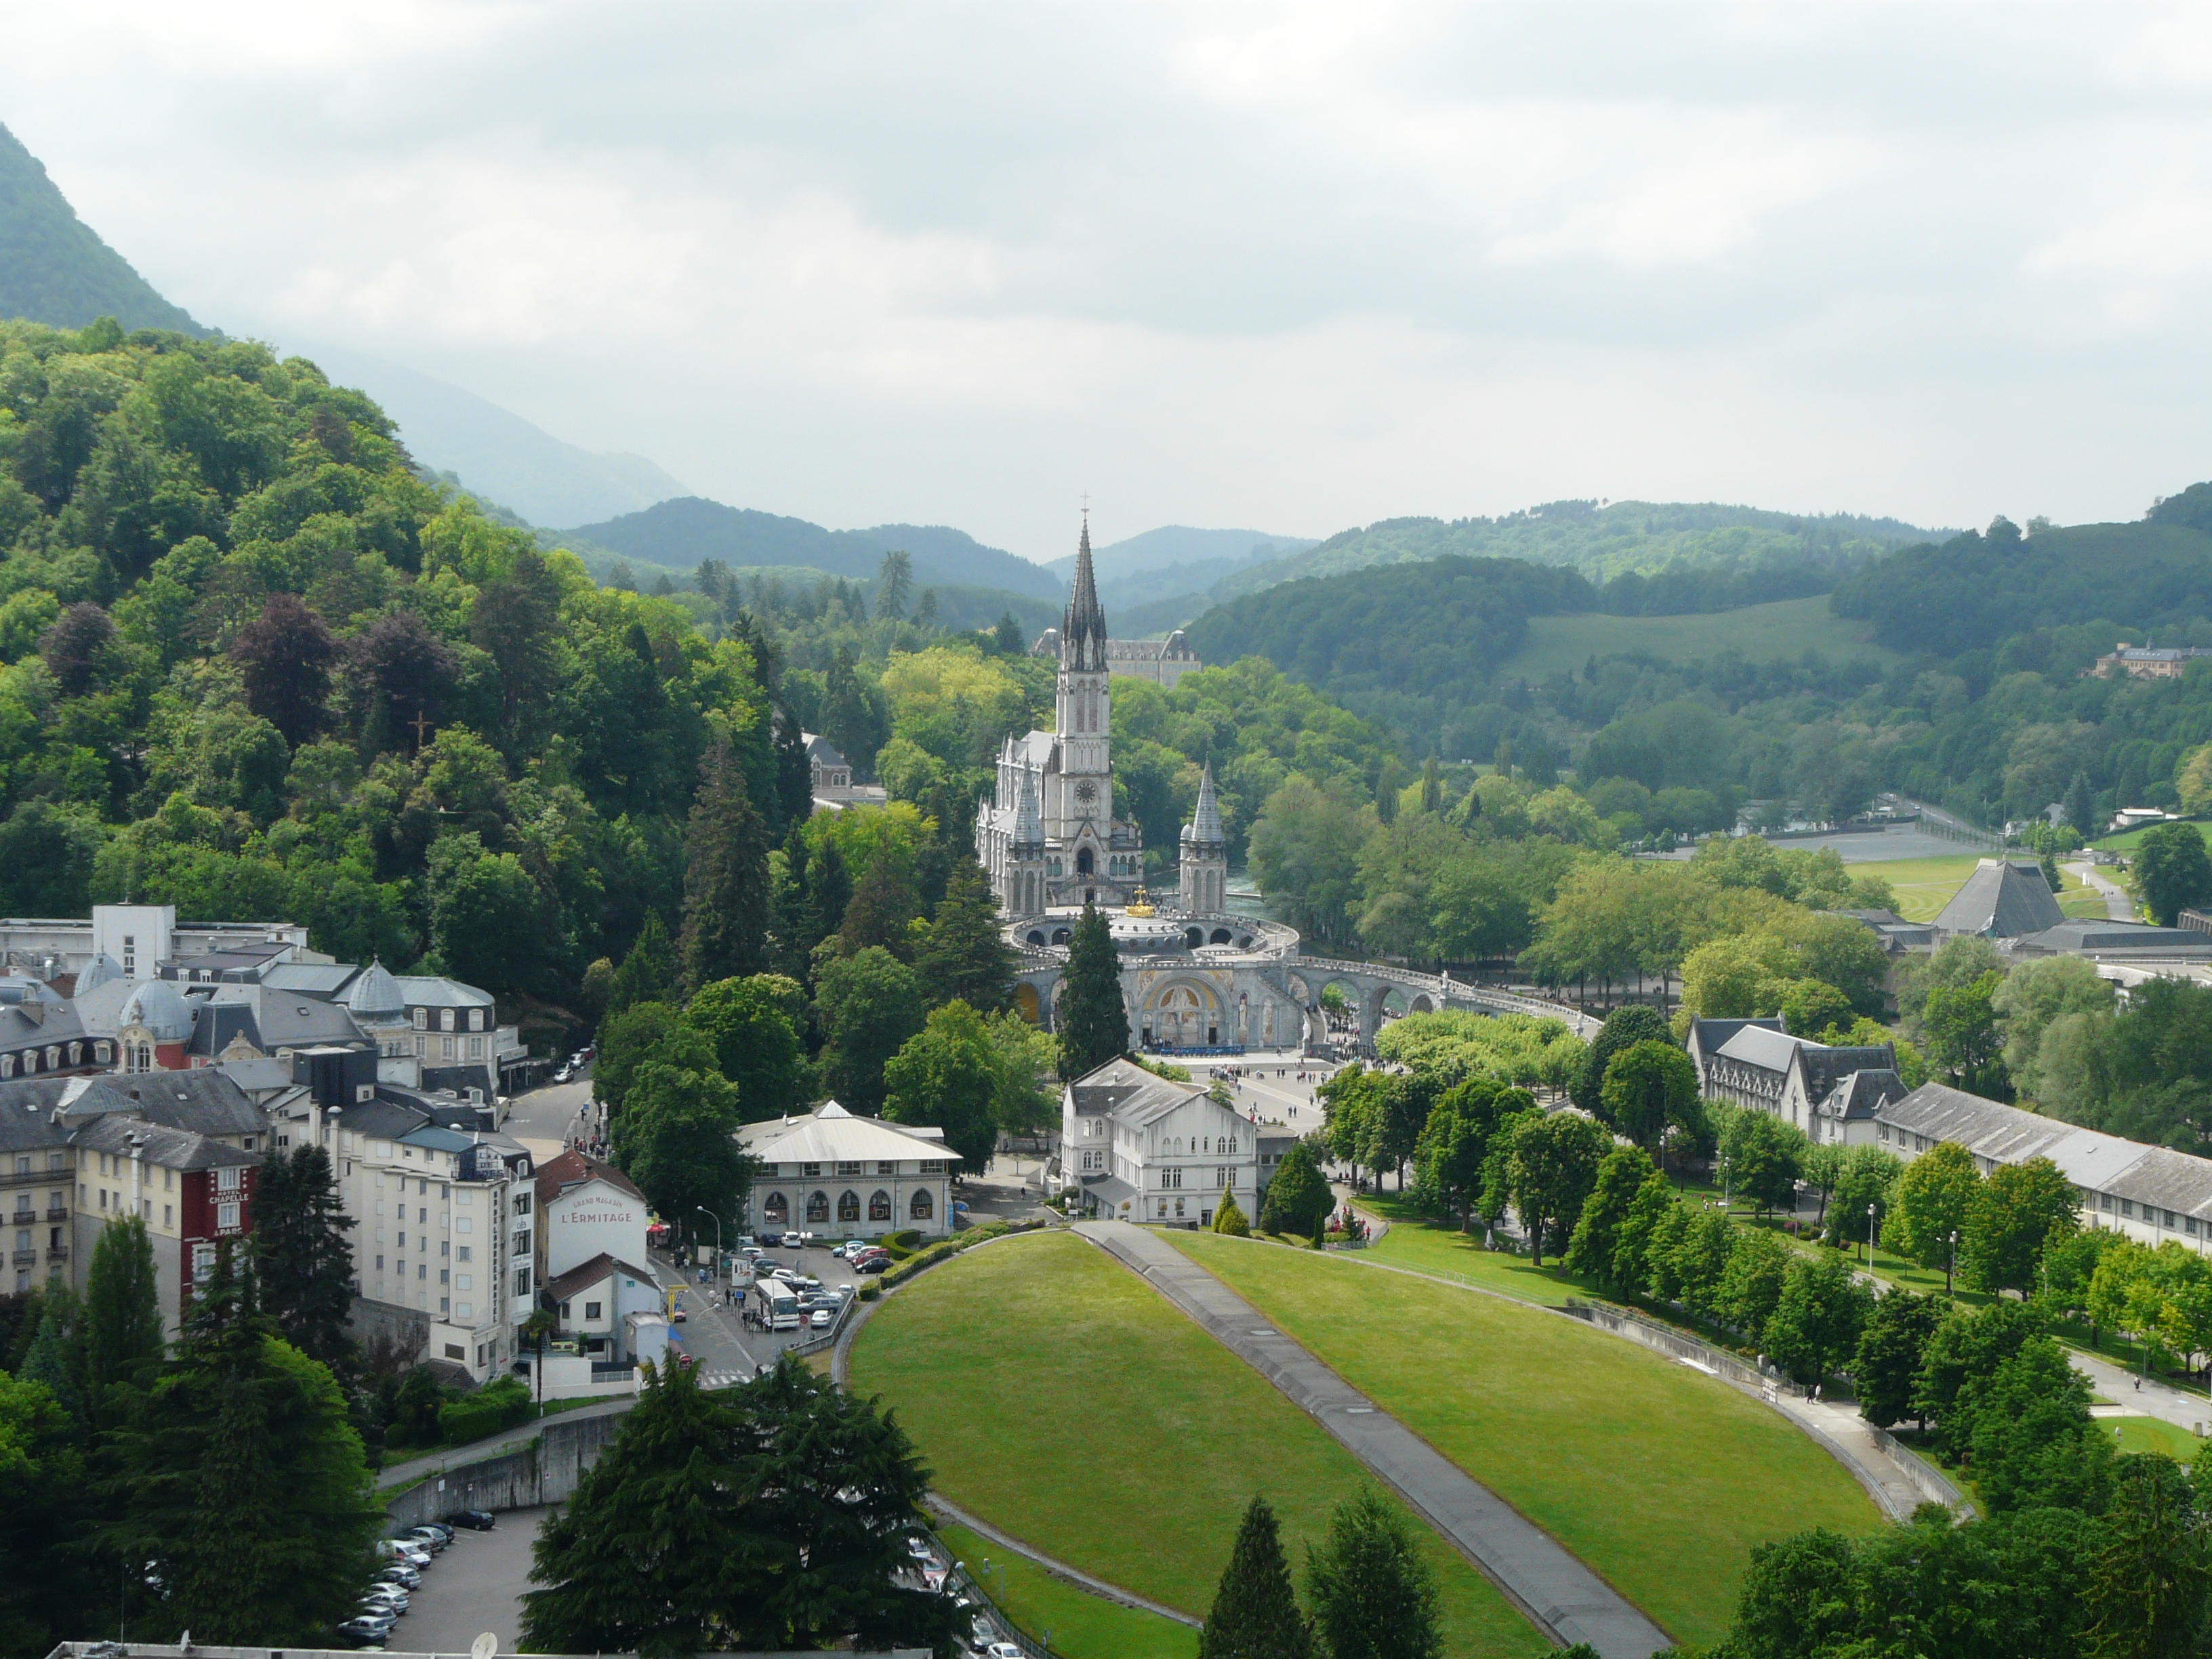 Sanctuary of Our Lady of Lourdes - Wikipedia